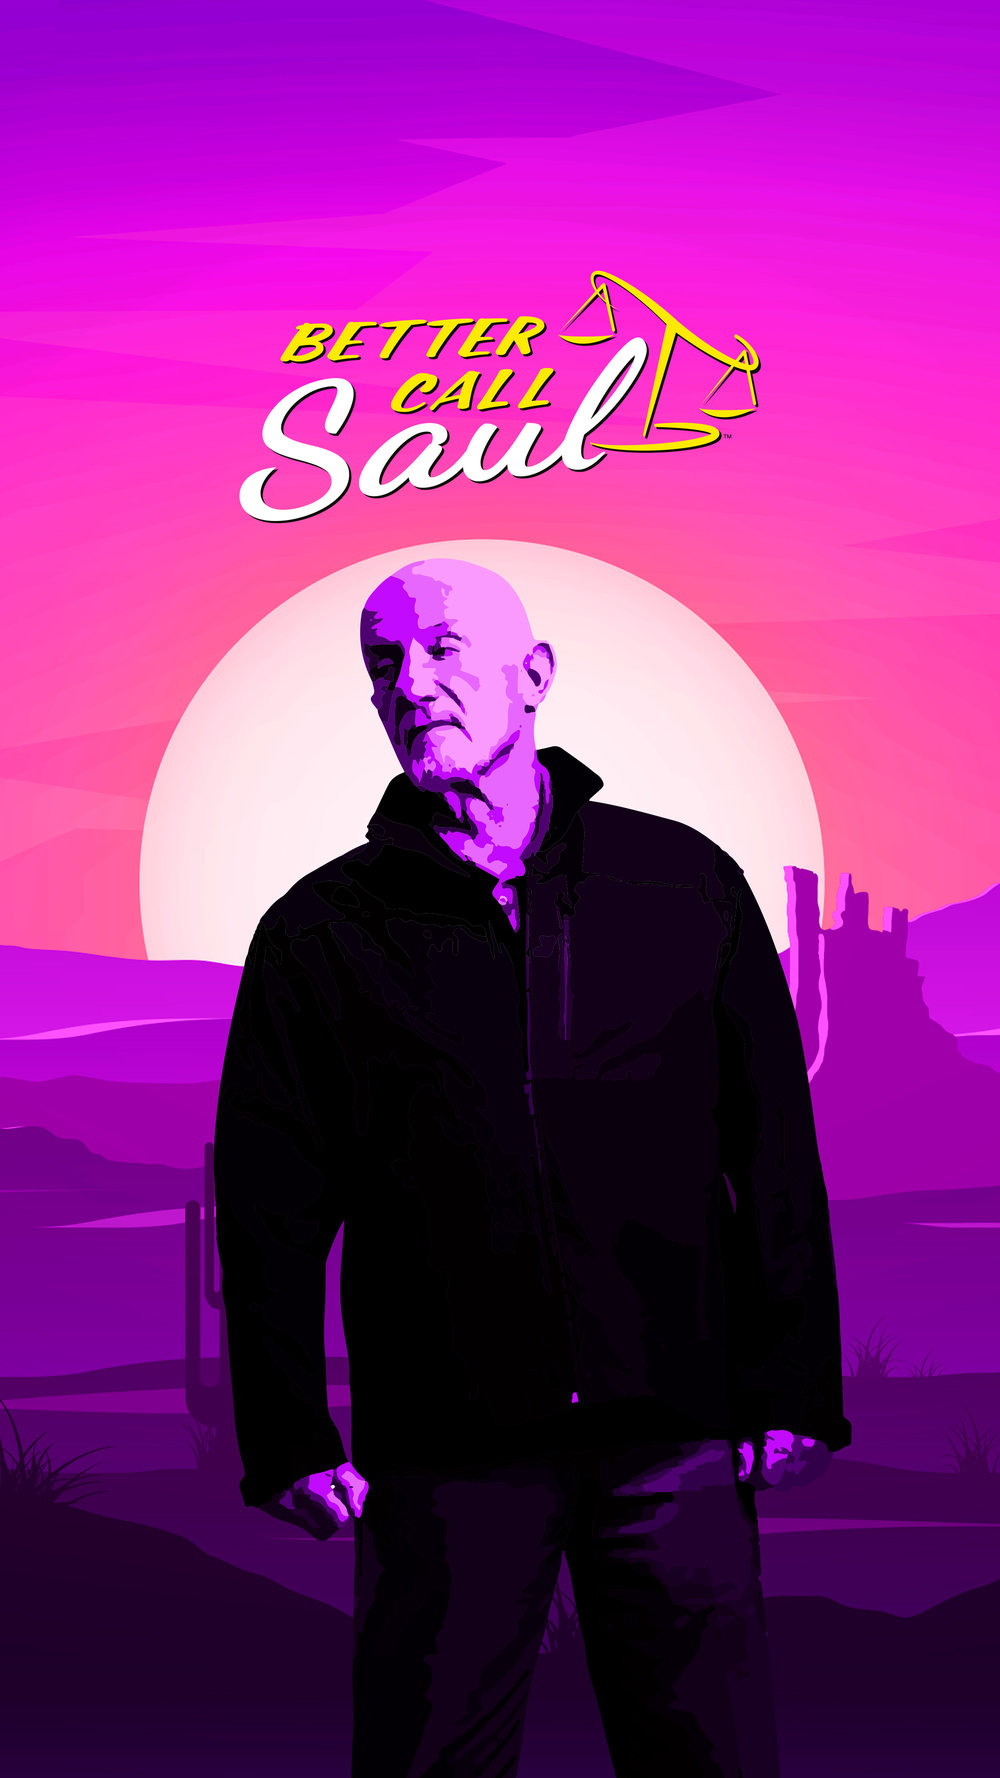 BetterCallSaul_Zedge_2250x4000_17.jpg